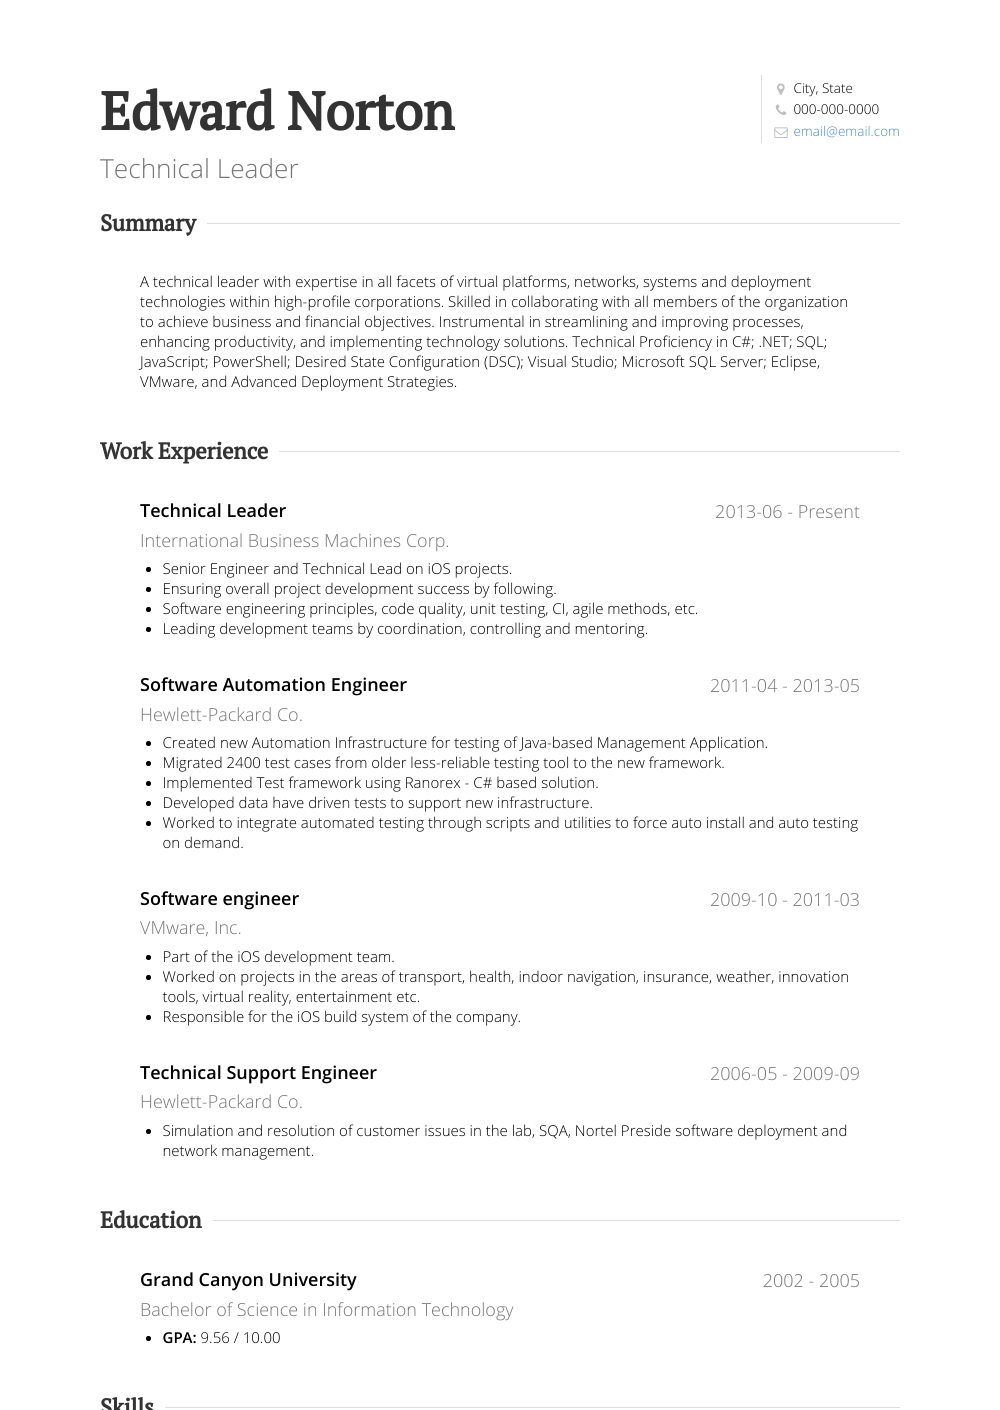 Technical Leader Resume Sample and Template